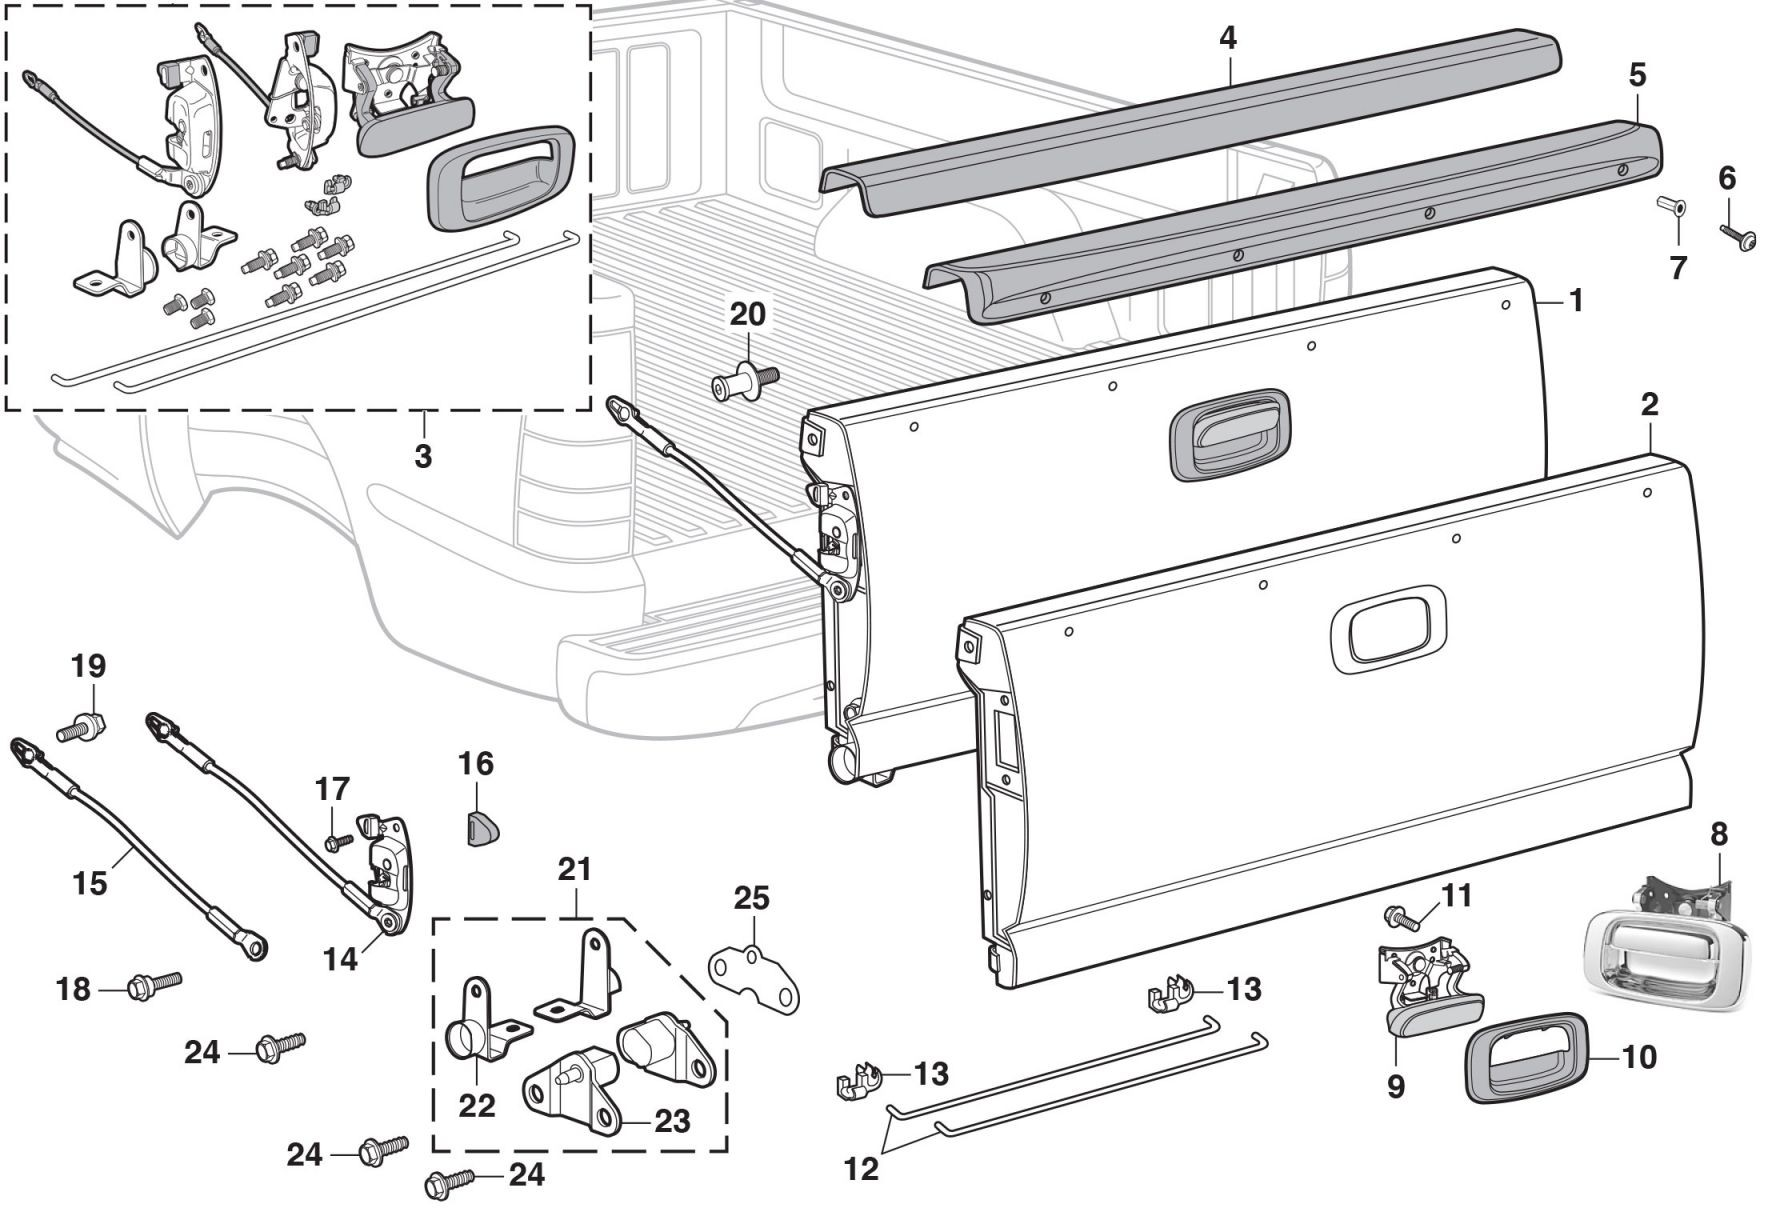 2004 Chevy Silverado Parts Diagram Cool Review About 2001 Gmc Sierra Parts with Awesome Of 2004 Chevy Silverado Parts Diagram